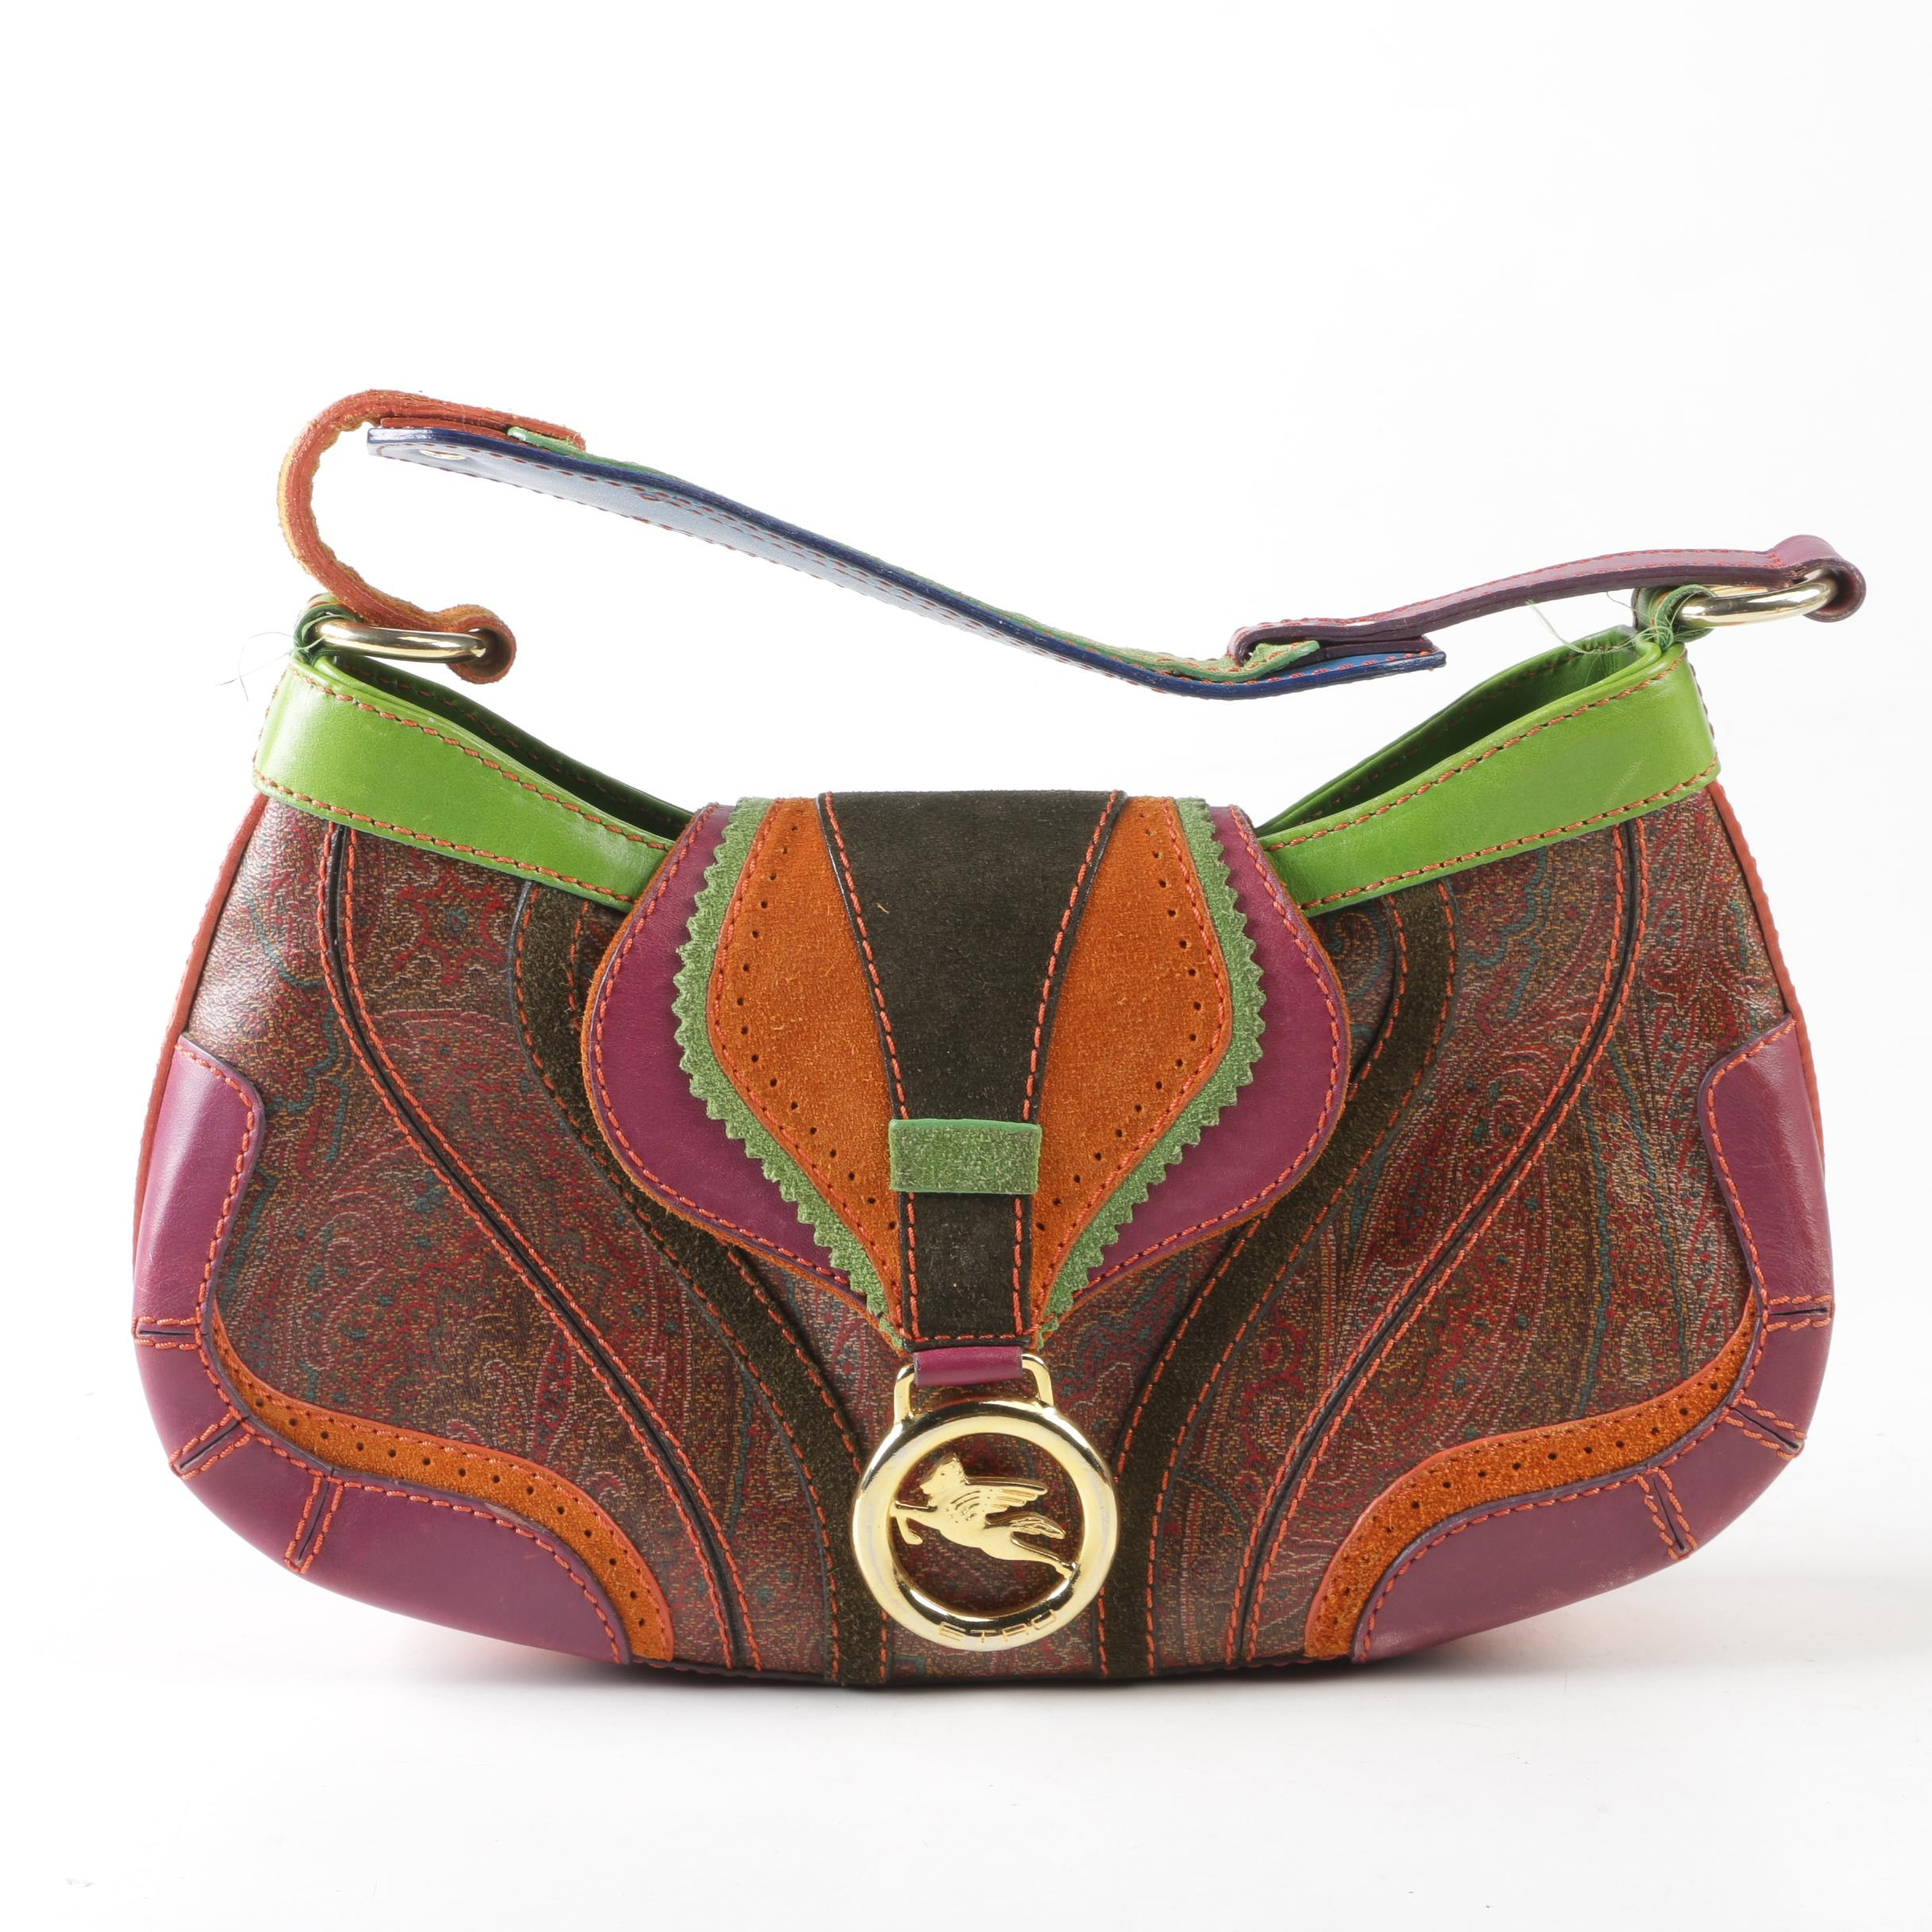 Etro Milano Paisley Print Coated Canvas and Multicolored Leather Handbag